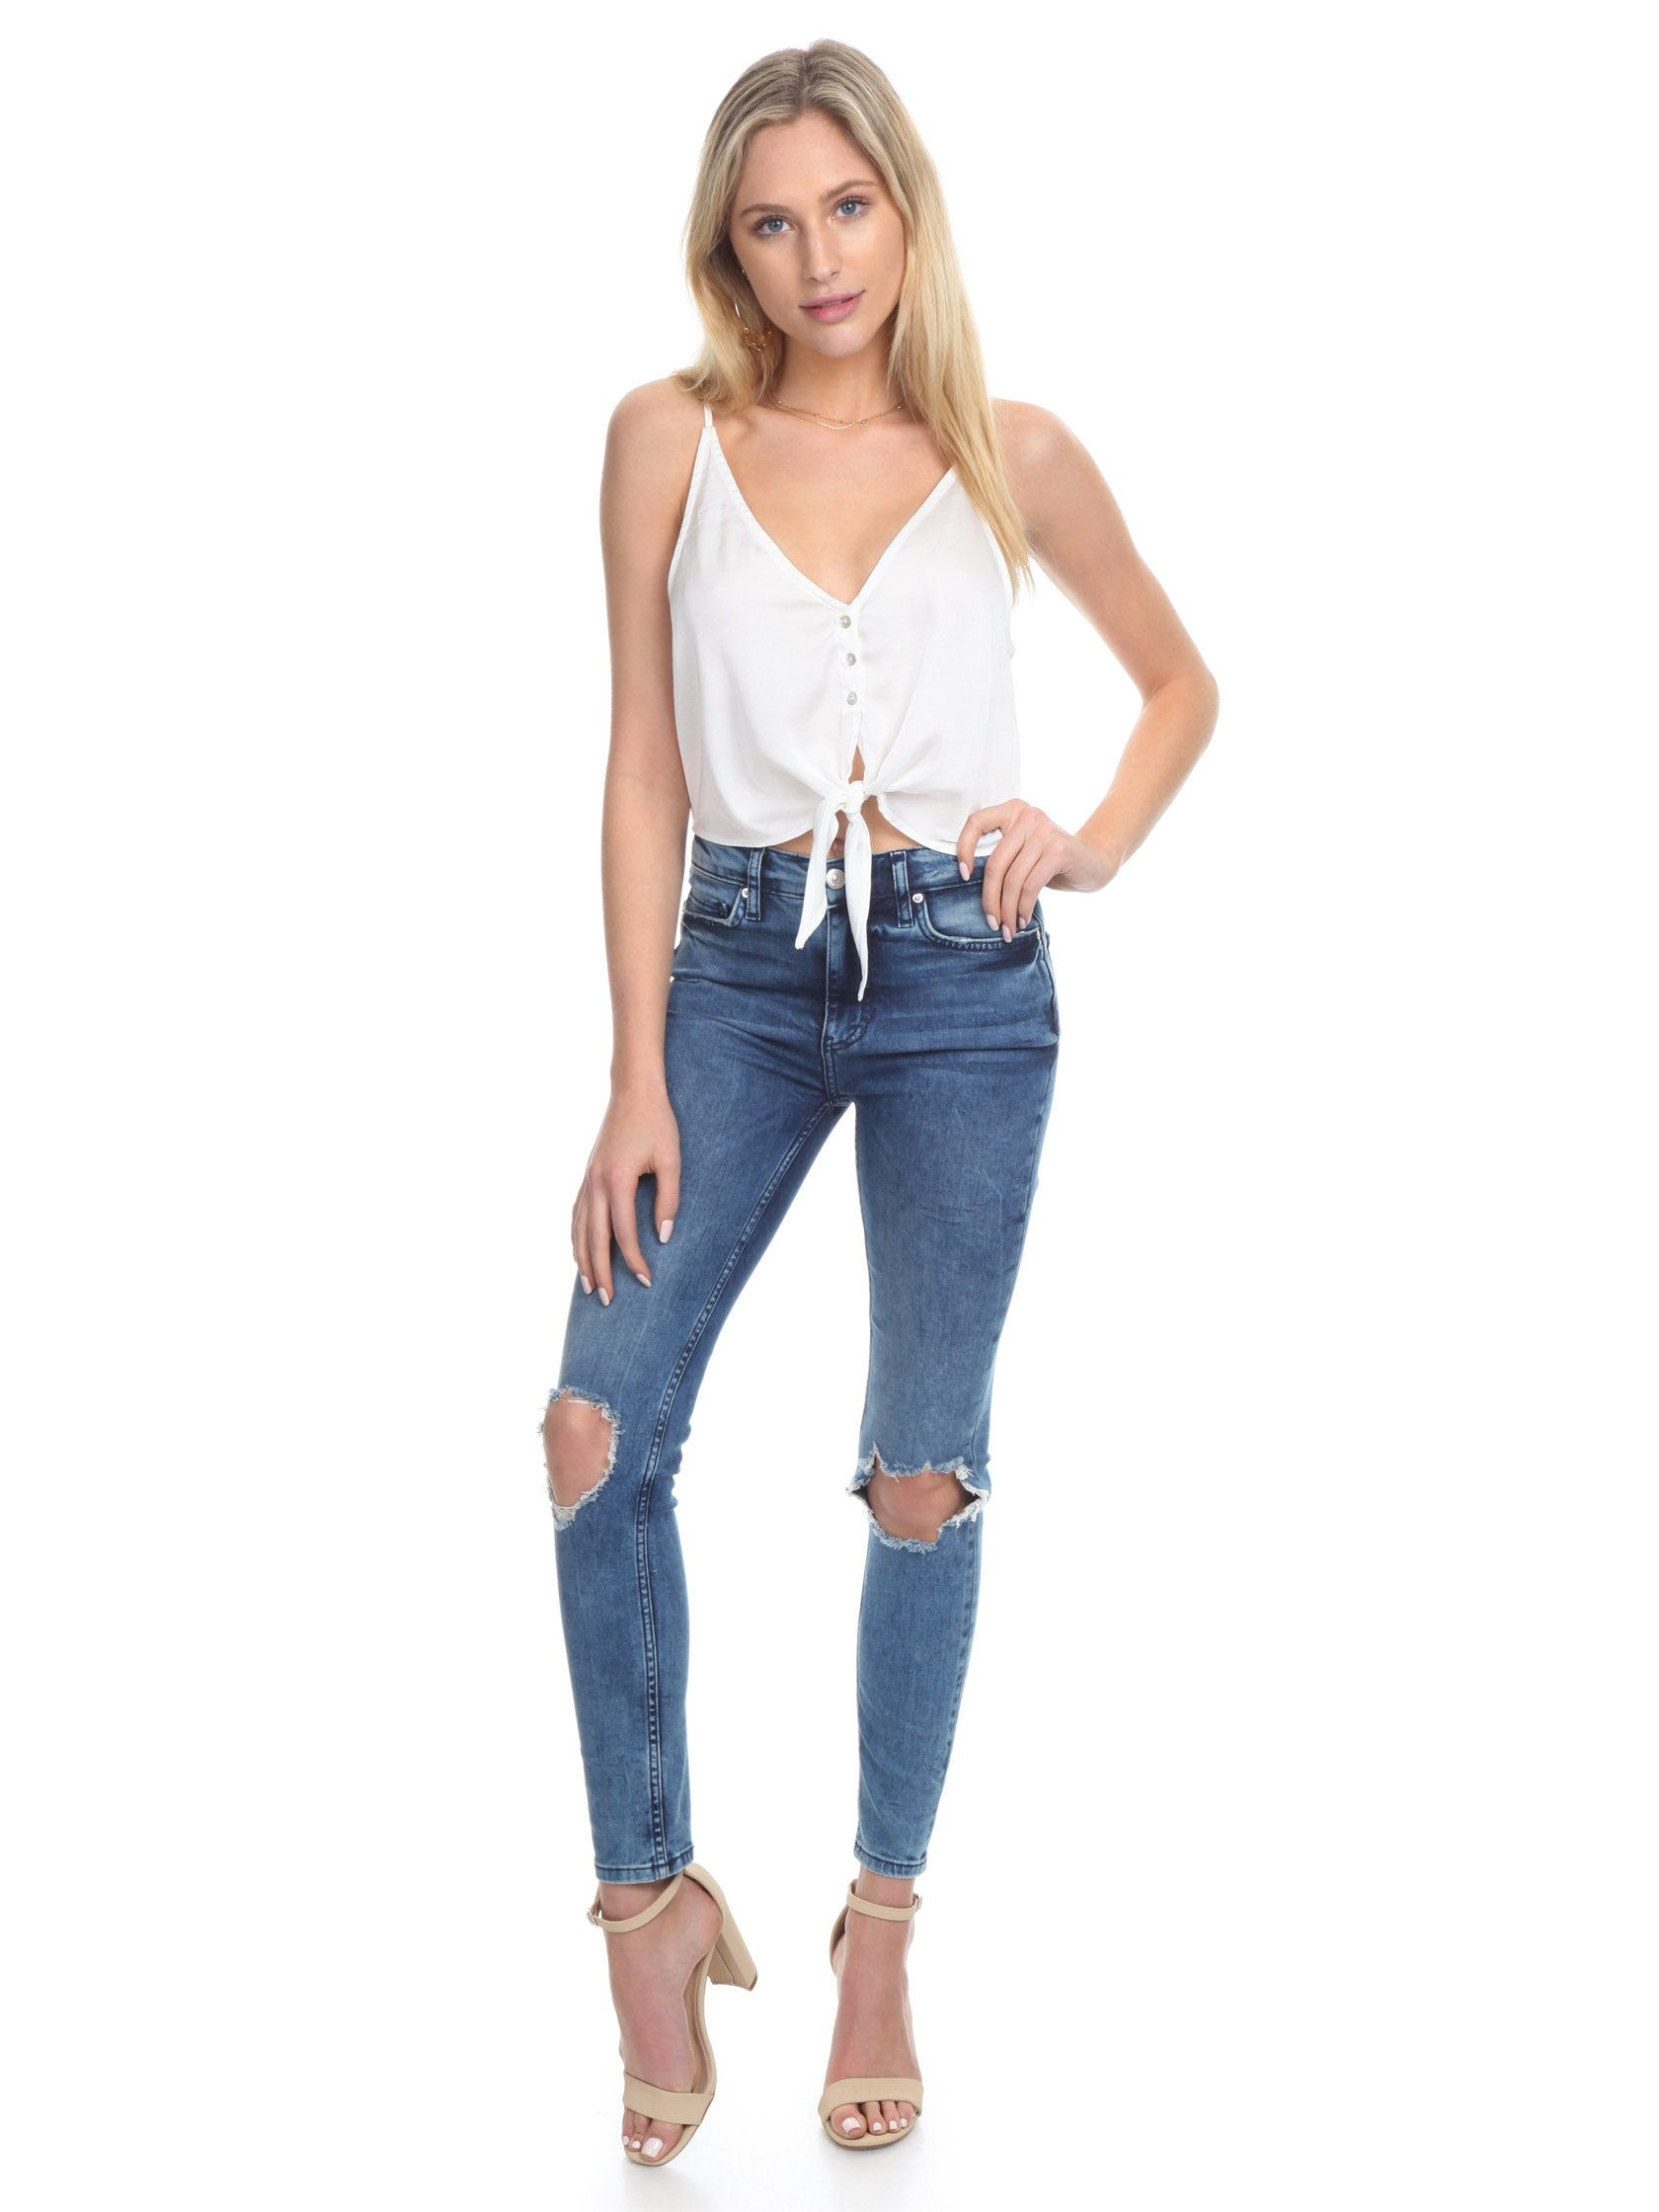 Girl outfit in a denim rental from Free People called High Rise Busted Skinny Jeans